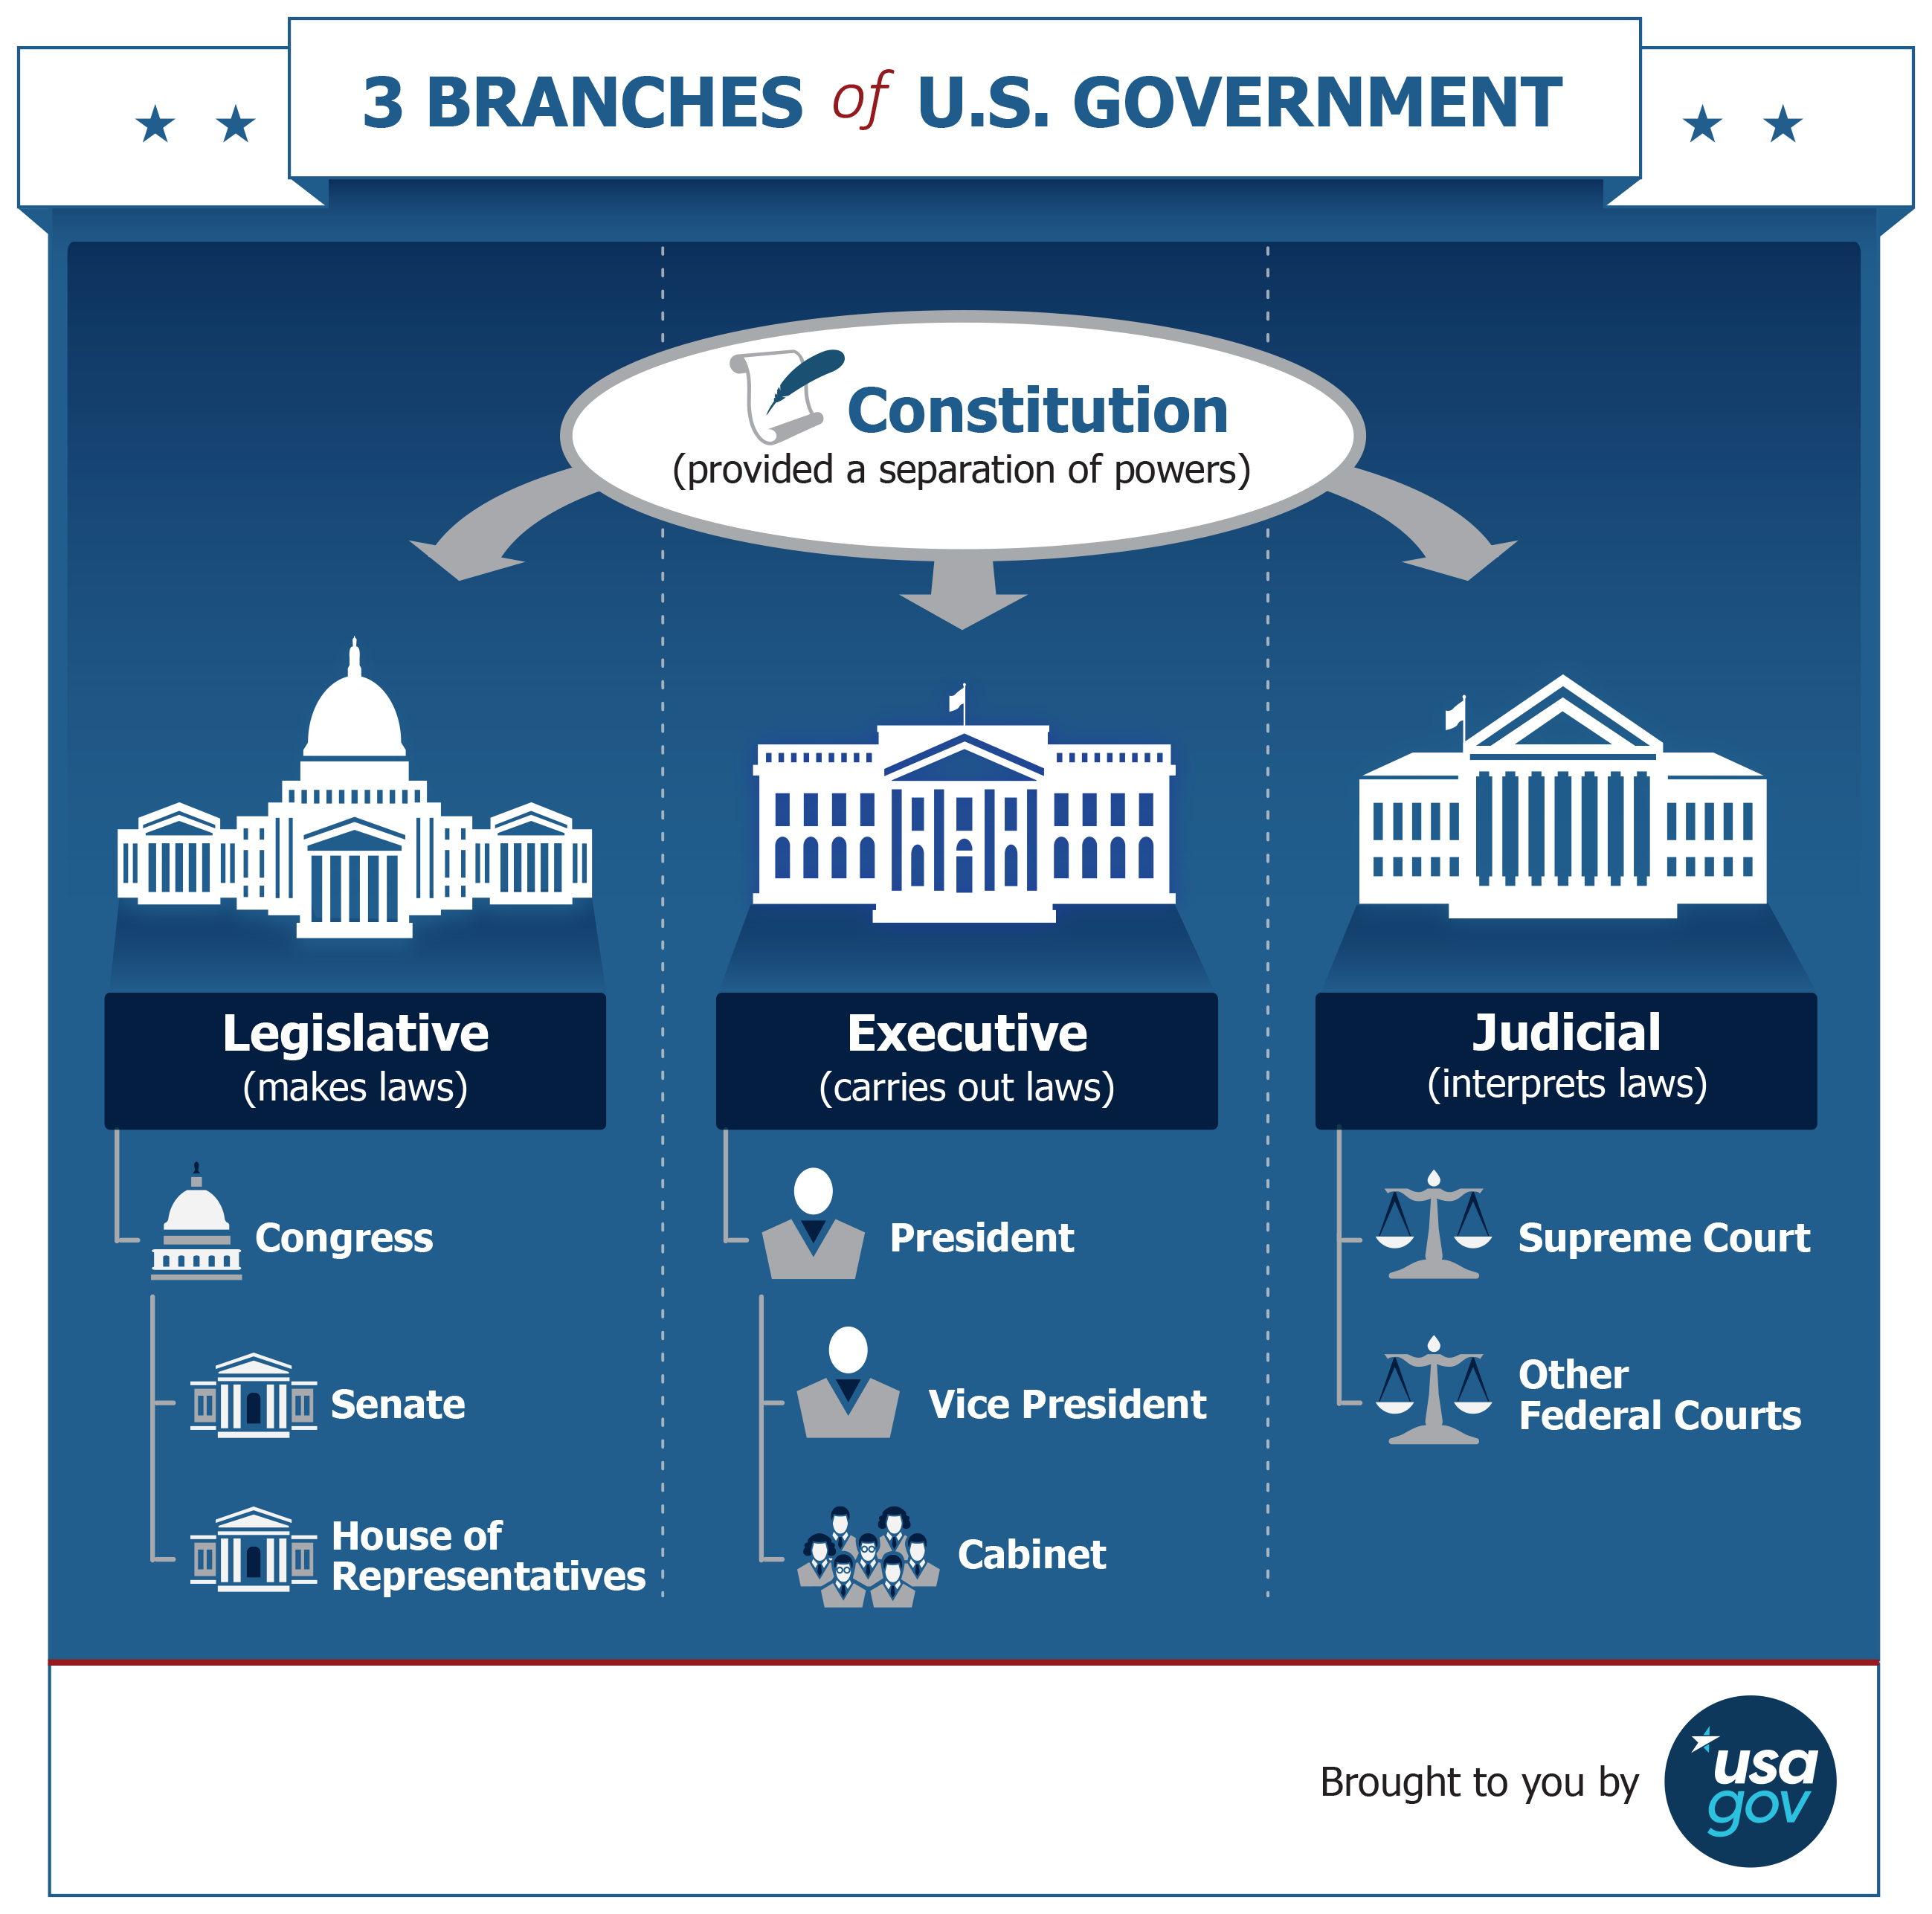 3 Branches of U.S. Government infographic. See description below.